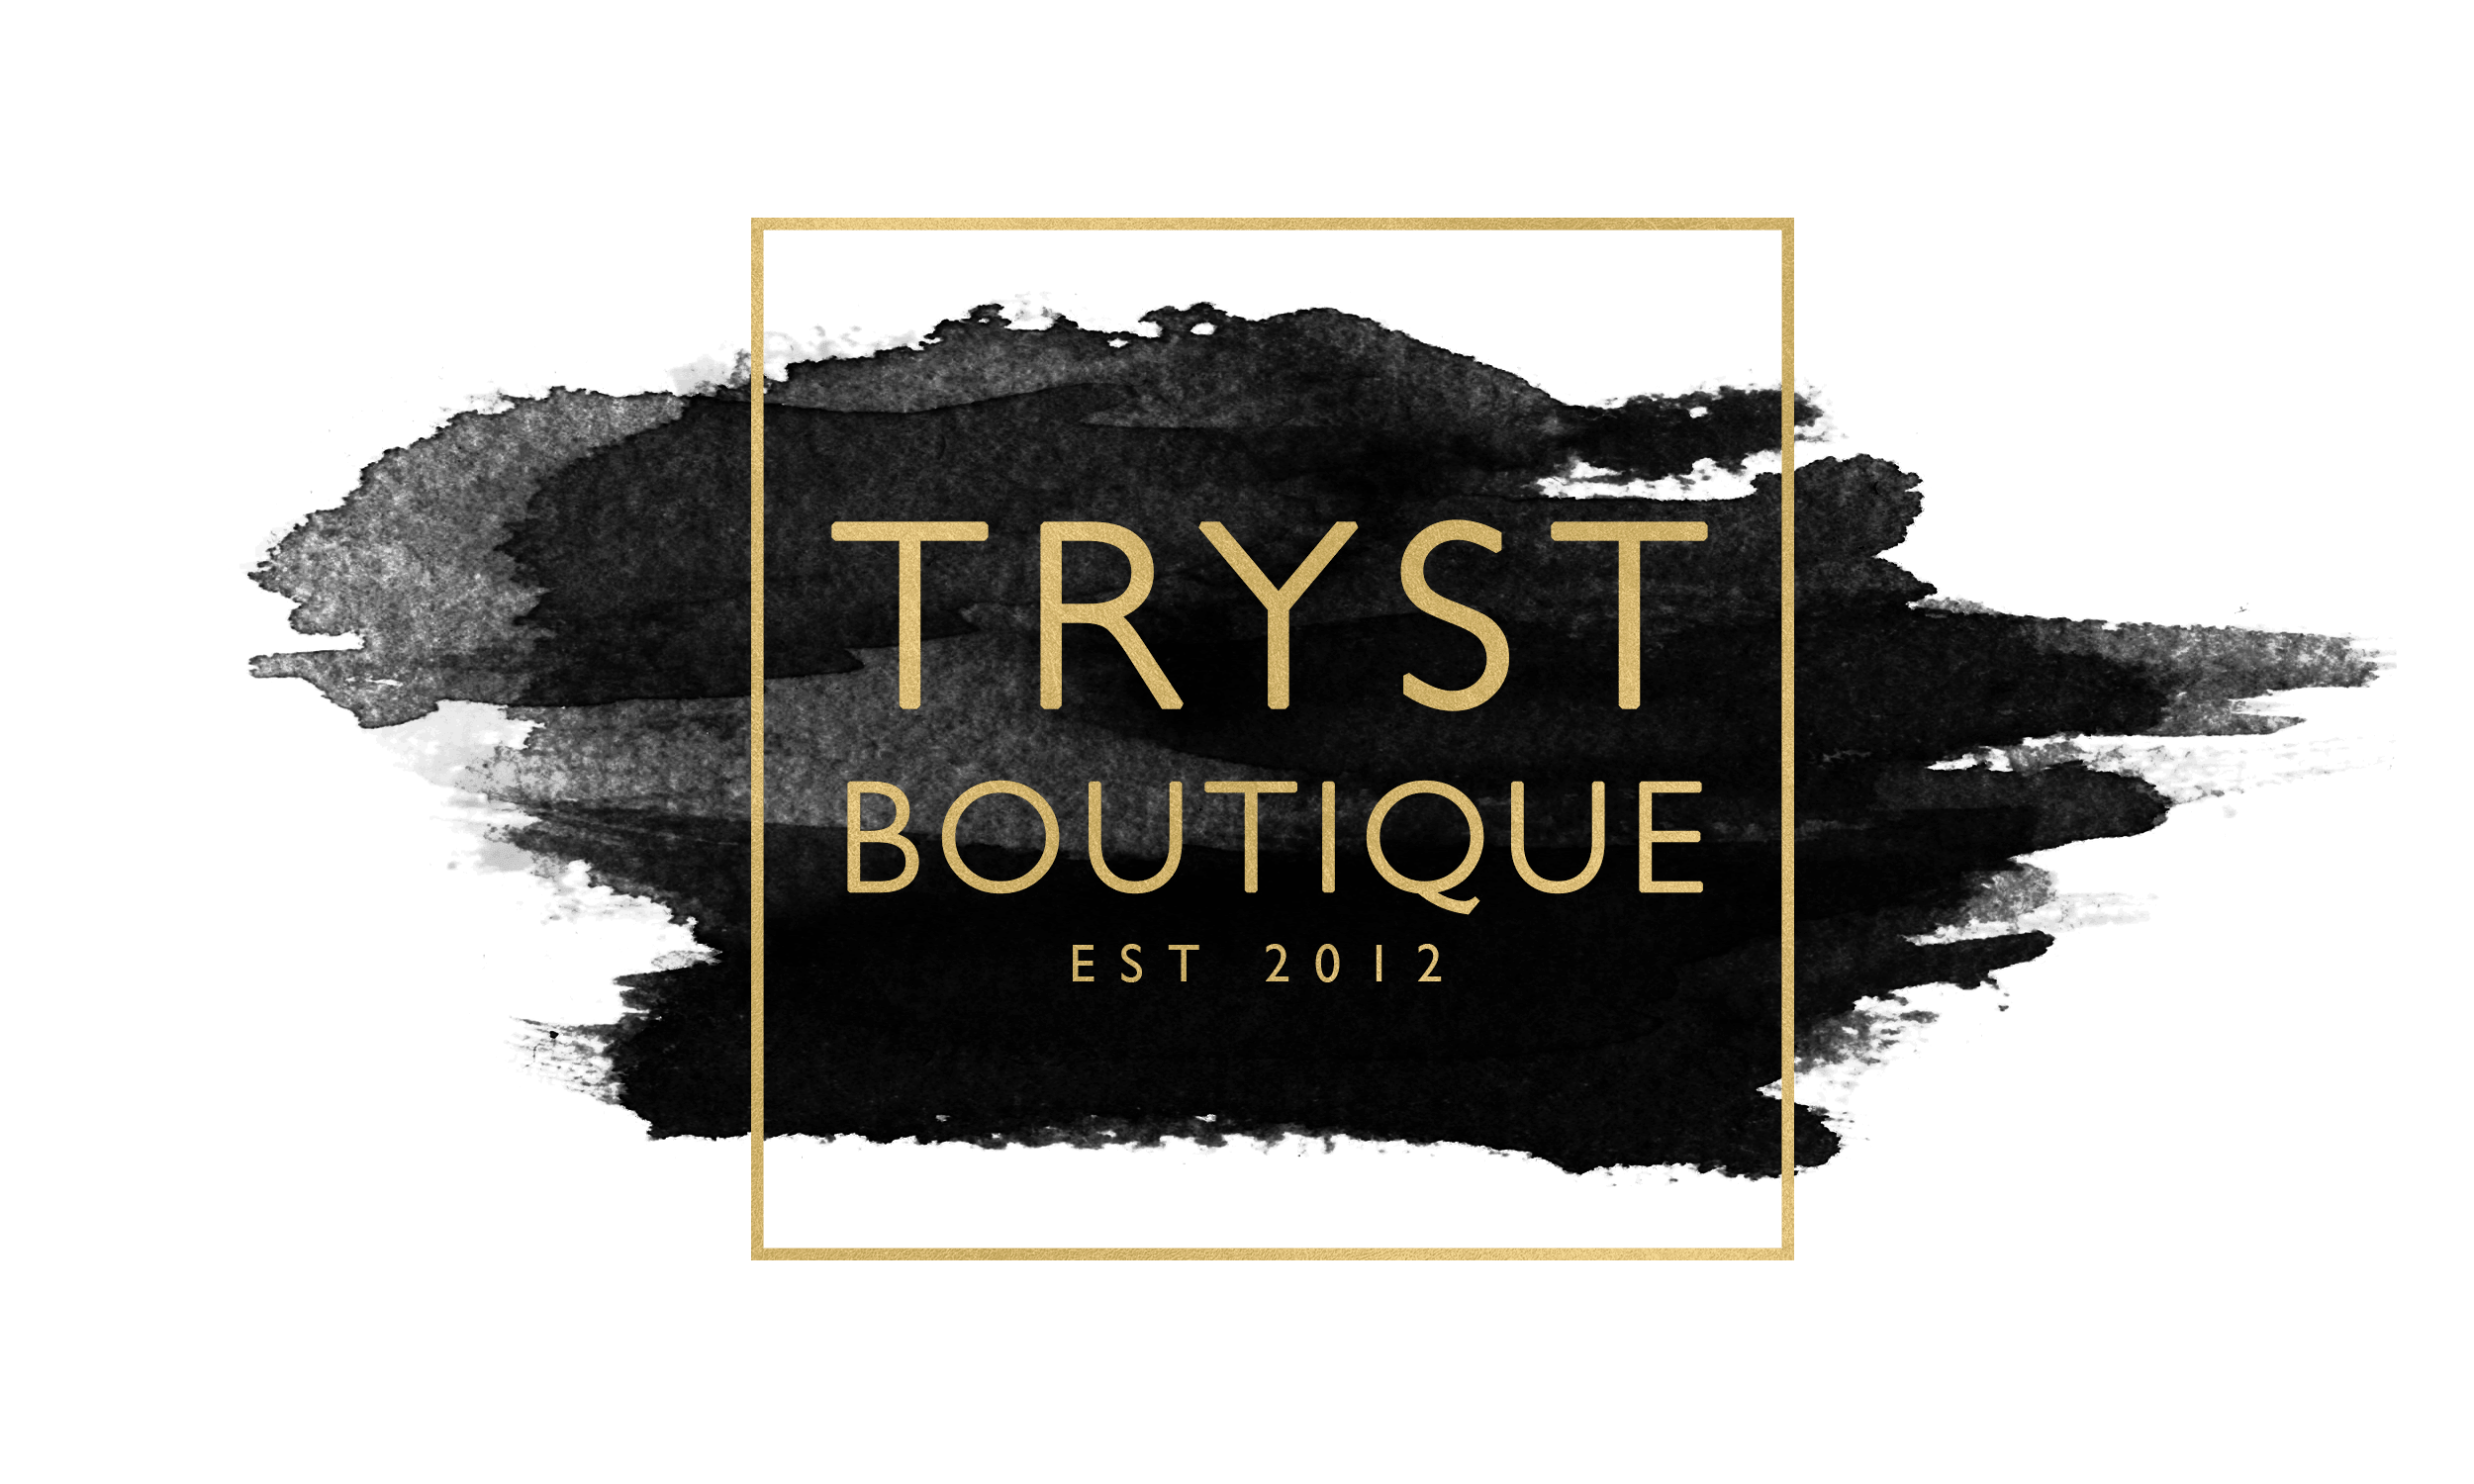 Tryst Boutique